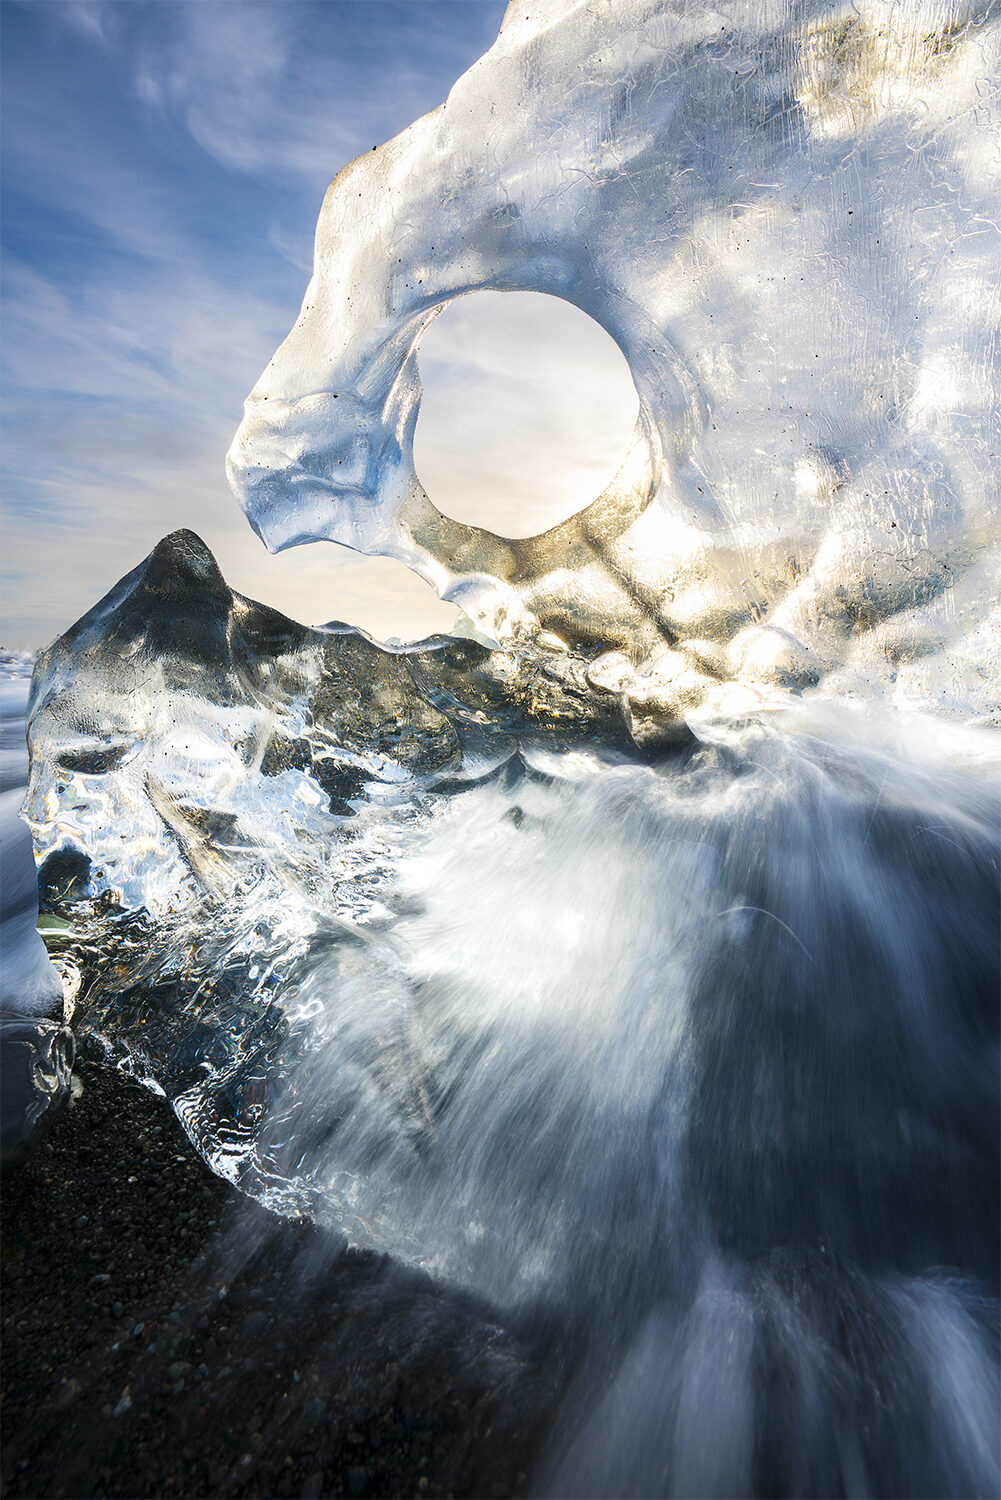 Water rushing over ice upon a beach.